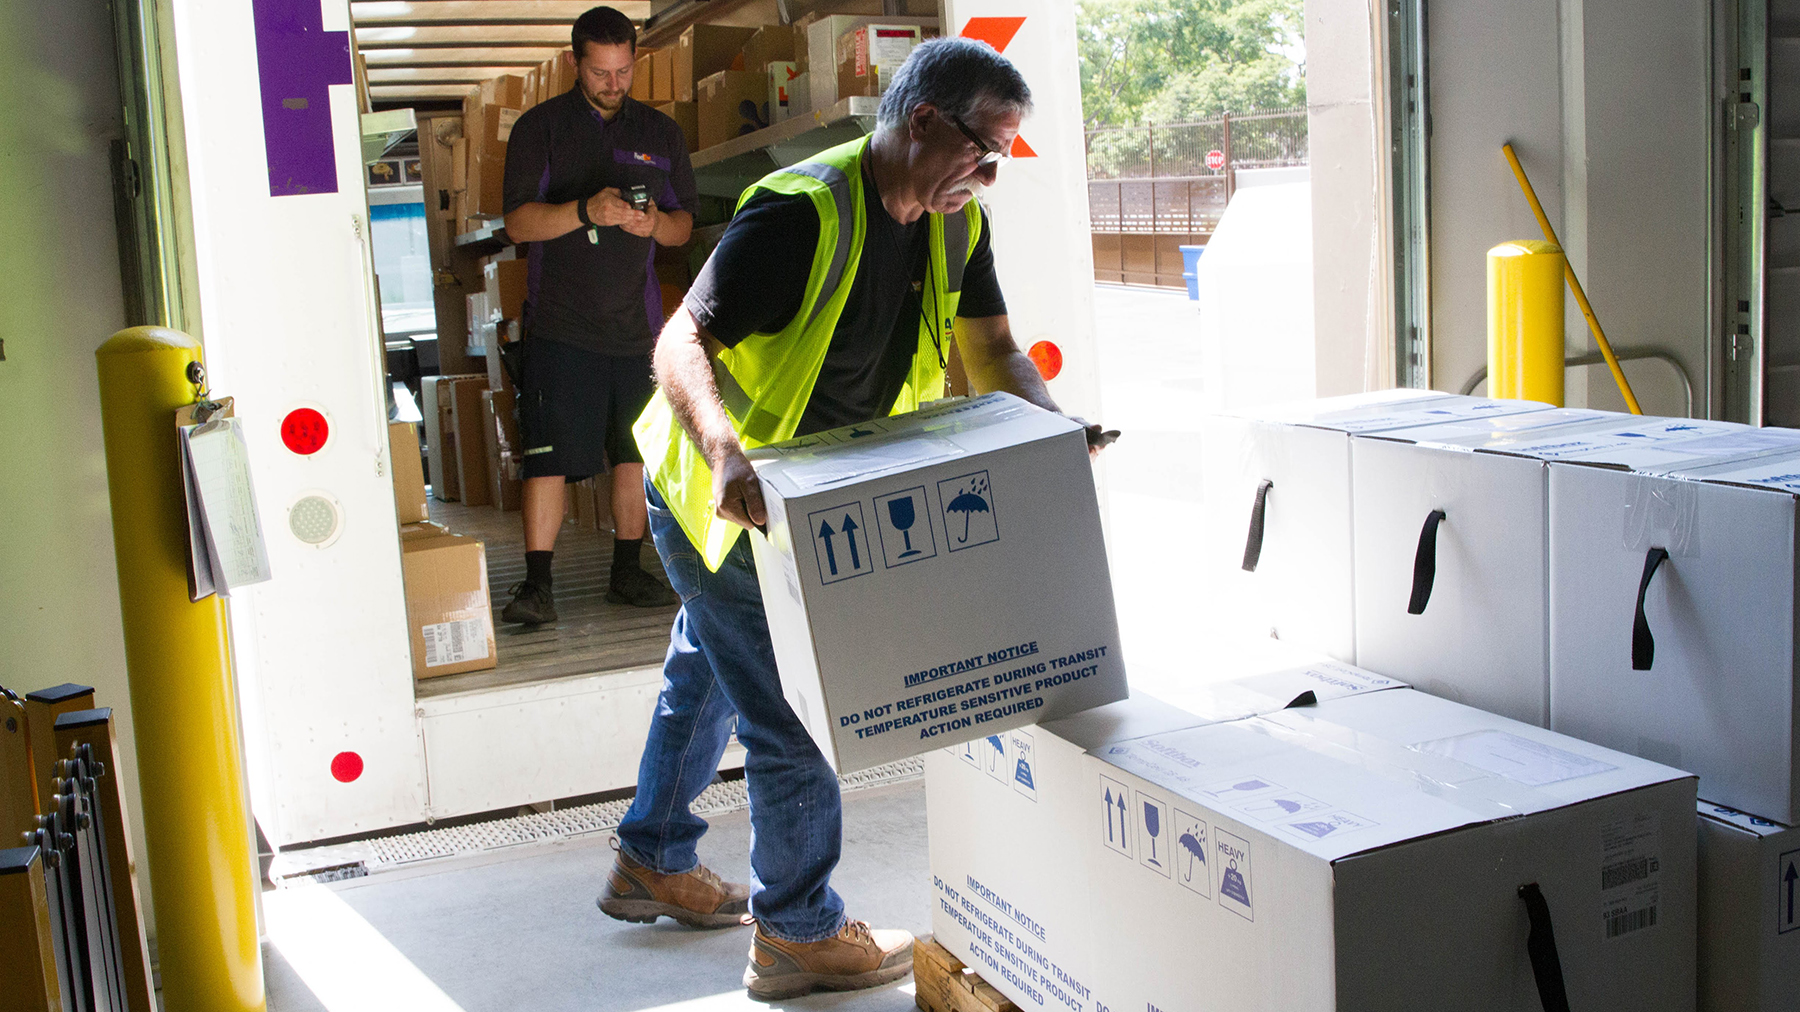 Insulin provided by Eli Lilly is shipped from Direct Relief's warehouse on August 1, 2018. The insulin was bound for the Santa Barbara County Public Health Department, which receives medicines and supplies from Direct Relief on a regular basis. (Lara Cooper/Direct Relief)